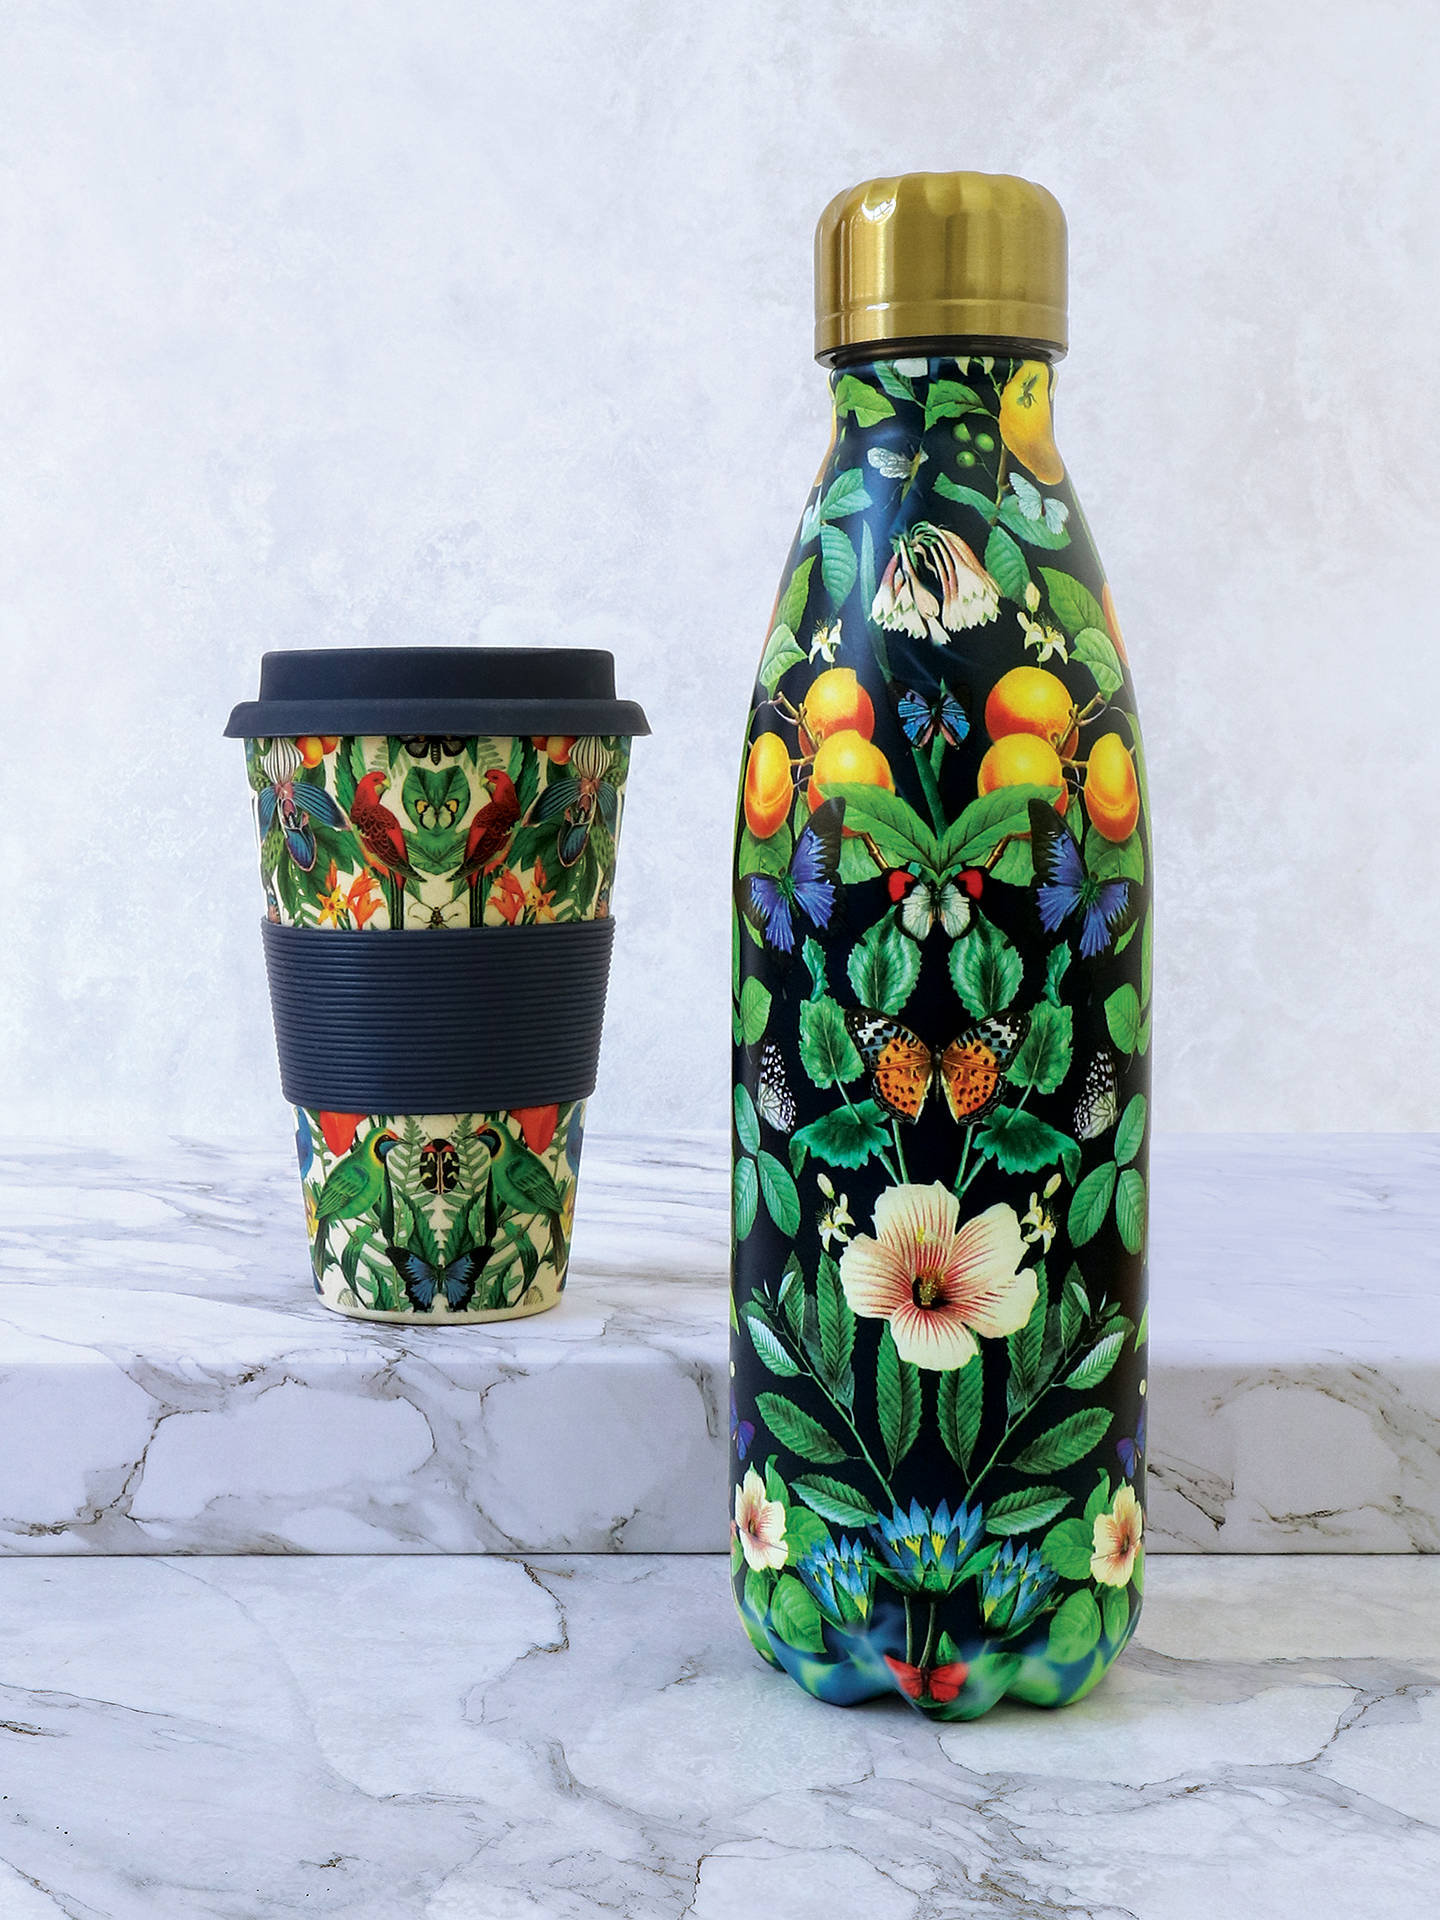 Buy Archive Archive Drinks Bottle, 500ml Online at johnlewis.com